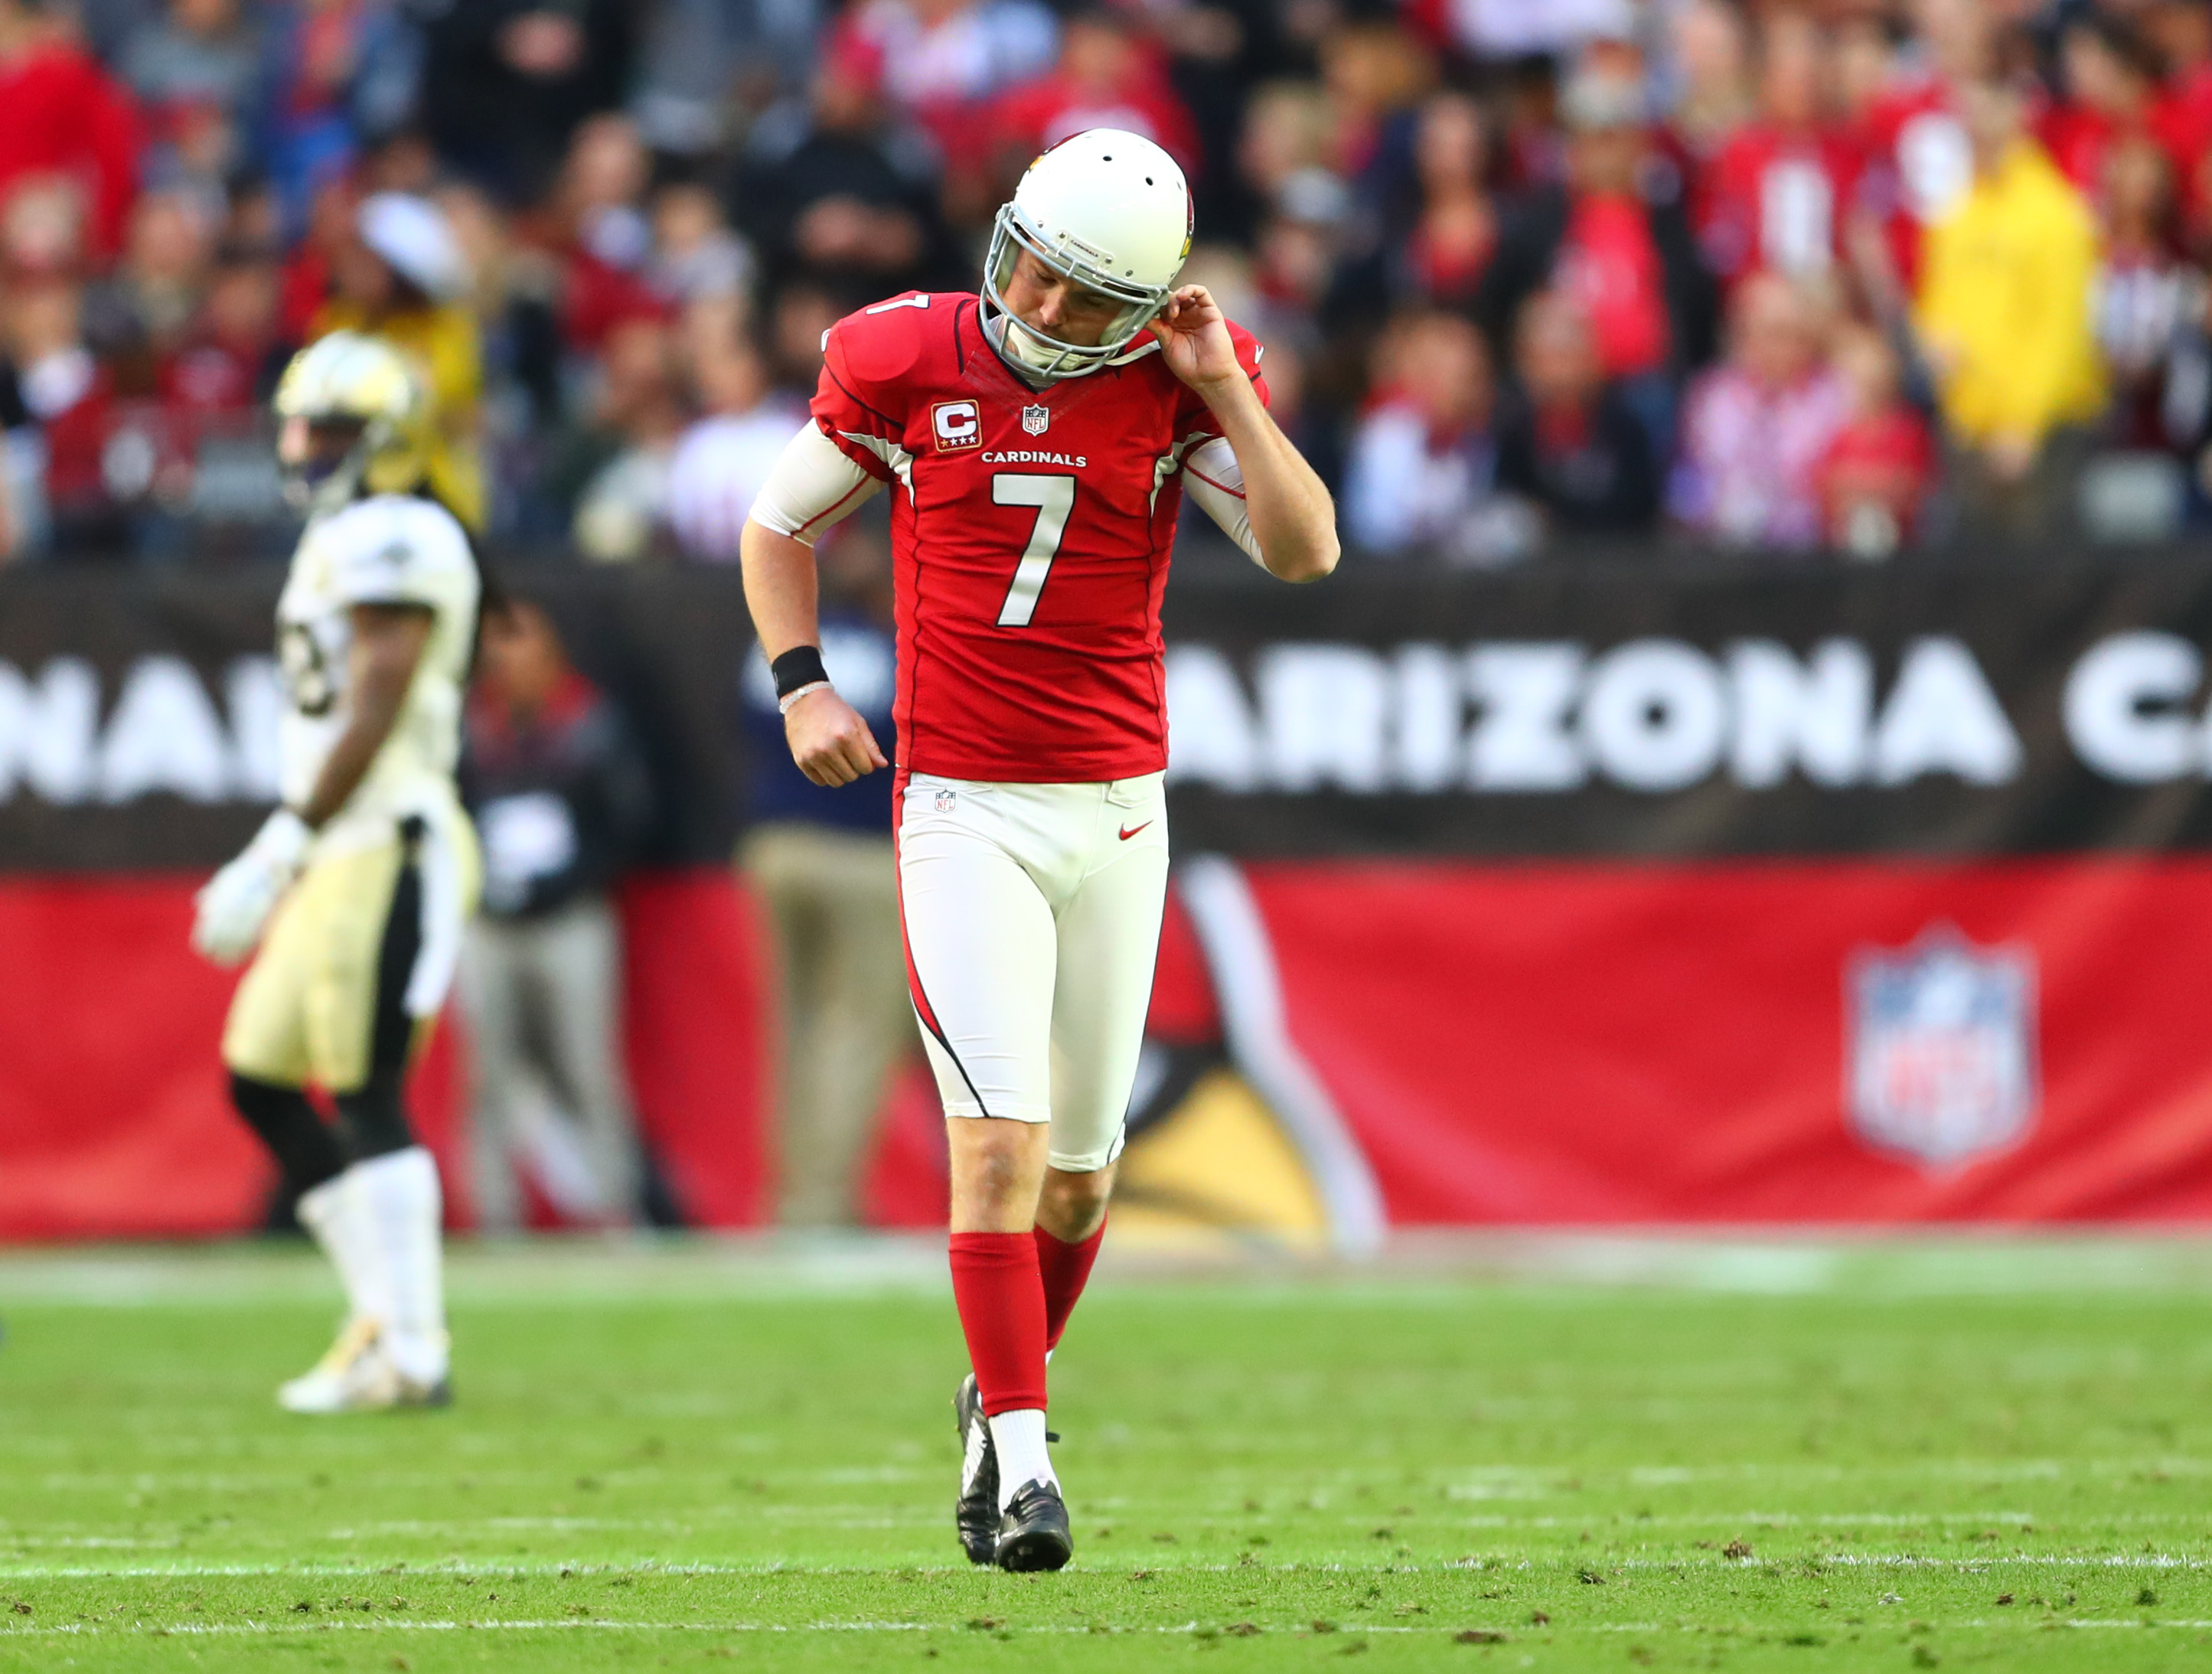 9755684-nfl-new-orleans-saints-at-arizona-cardinals